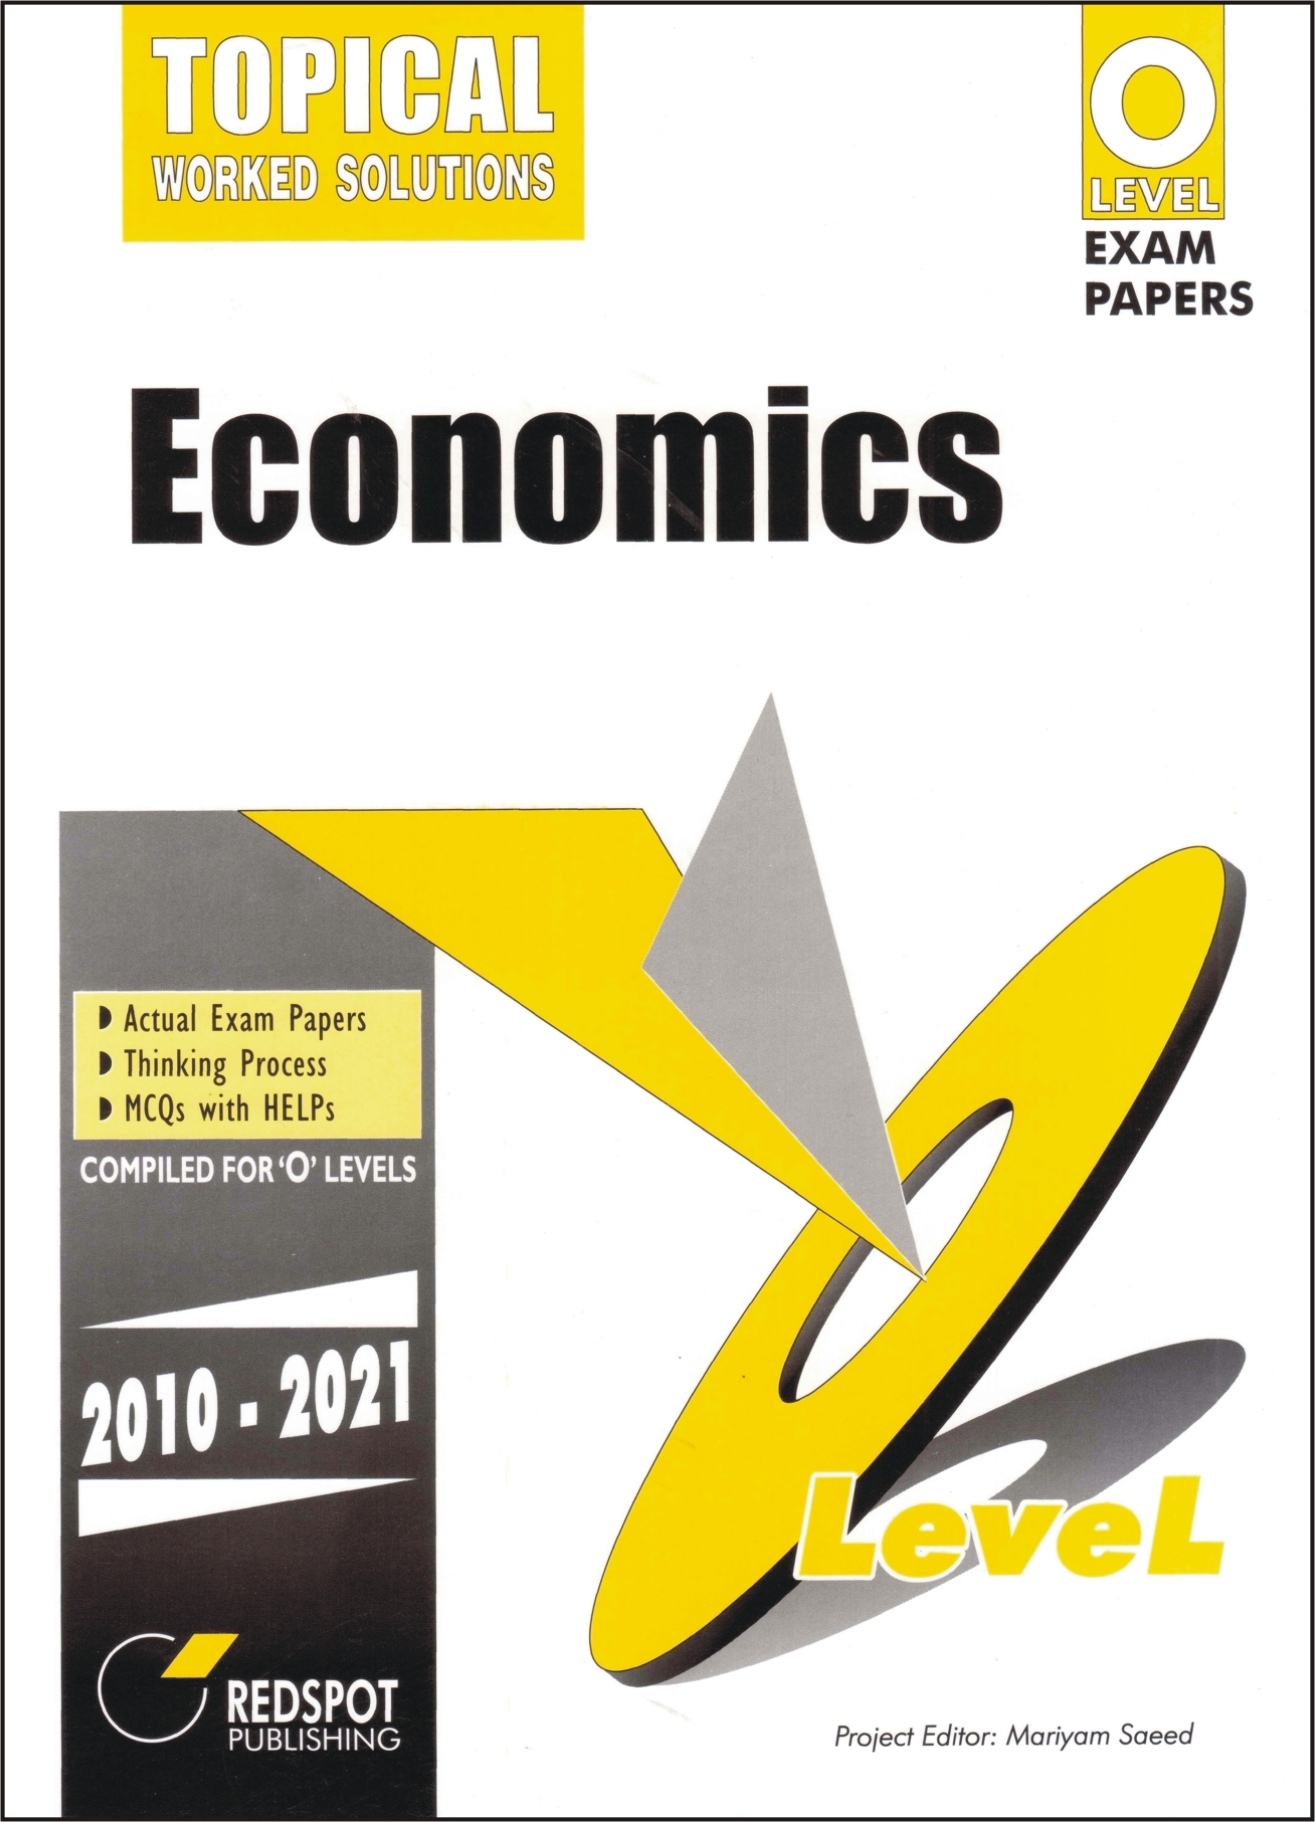 economics a as level exam Cambridge international a & as level economics syllabus code 9708 no previous study of the subject is assumed by the syllabus centres and candidates may choose to: • take all advanced level (a level) and advanced subsidiary level (as level) components at one exam session, leading to the full a level qualification (papers 1, 2, 3 and 4) • take the as level components (papers 1 and 2) at.